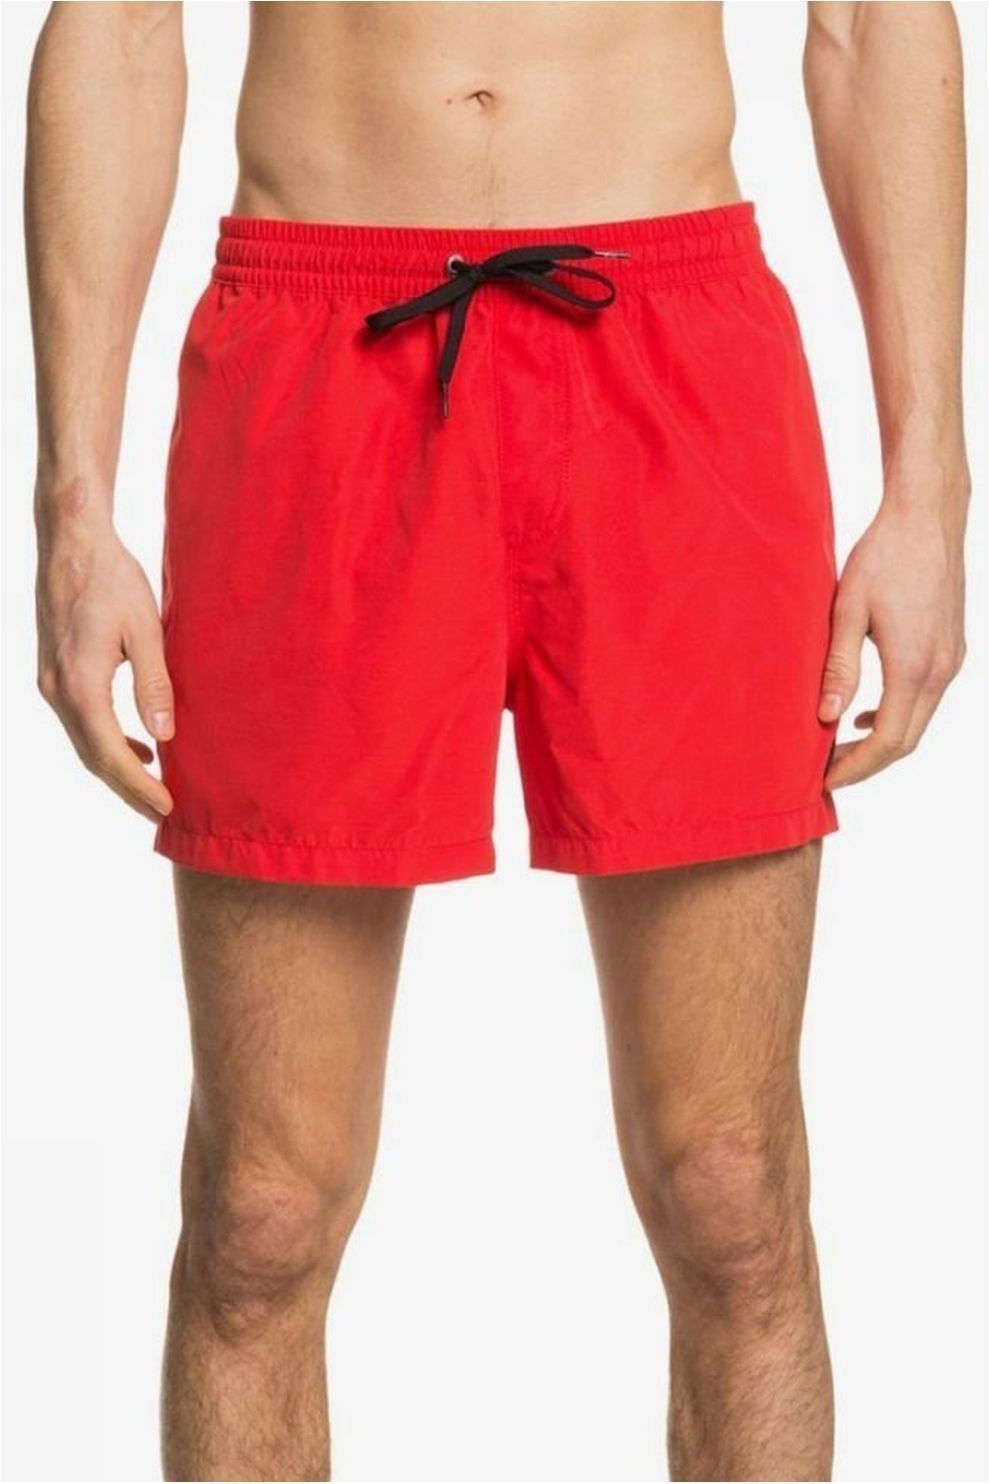 Quiksilver Zwemshort Everyday Volley 15 voor heren - Rood - Maten: S, M, L, XL